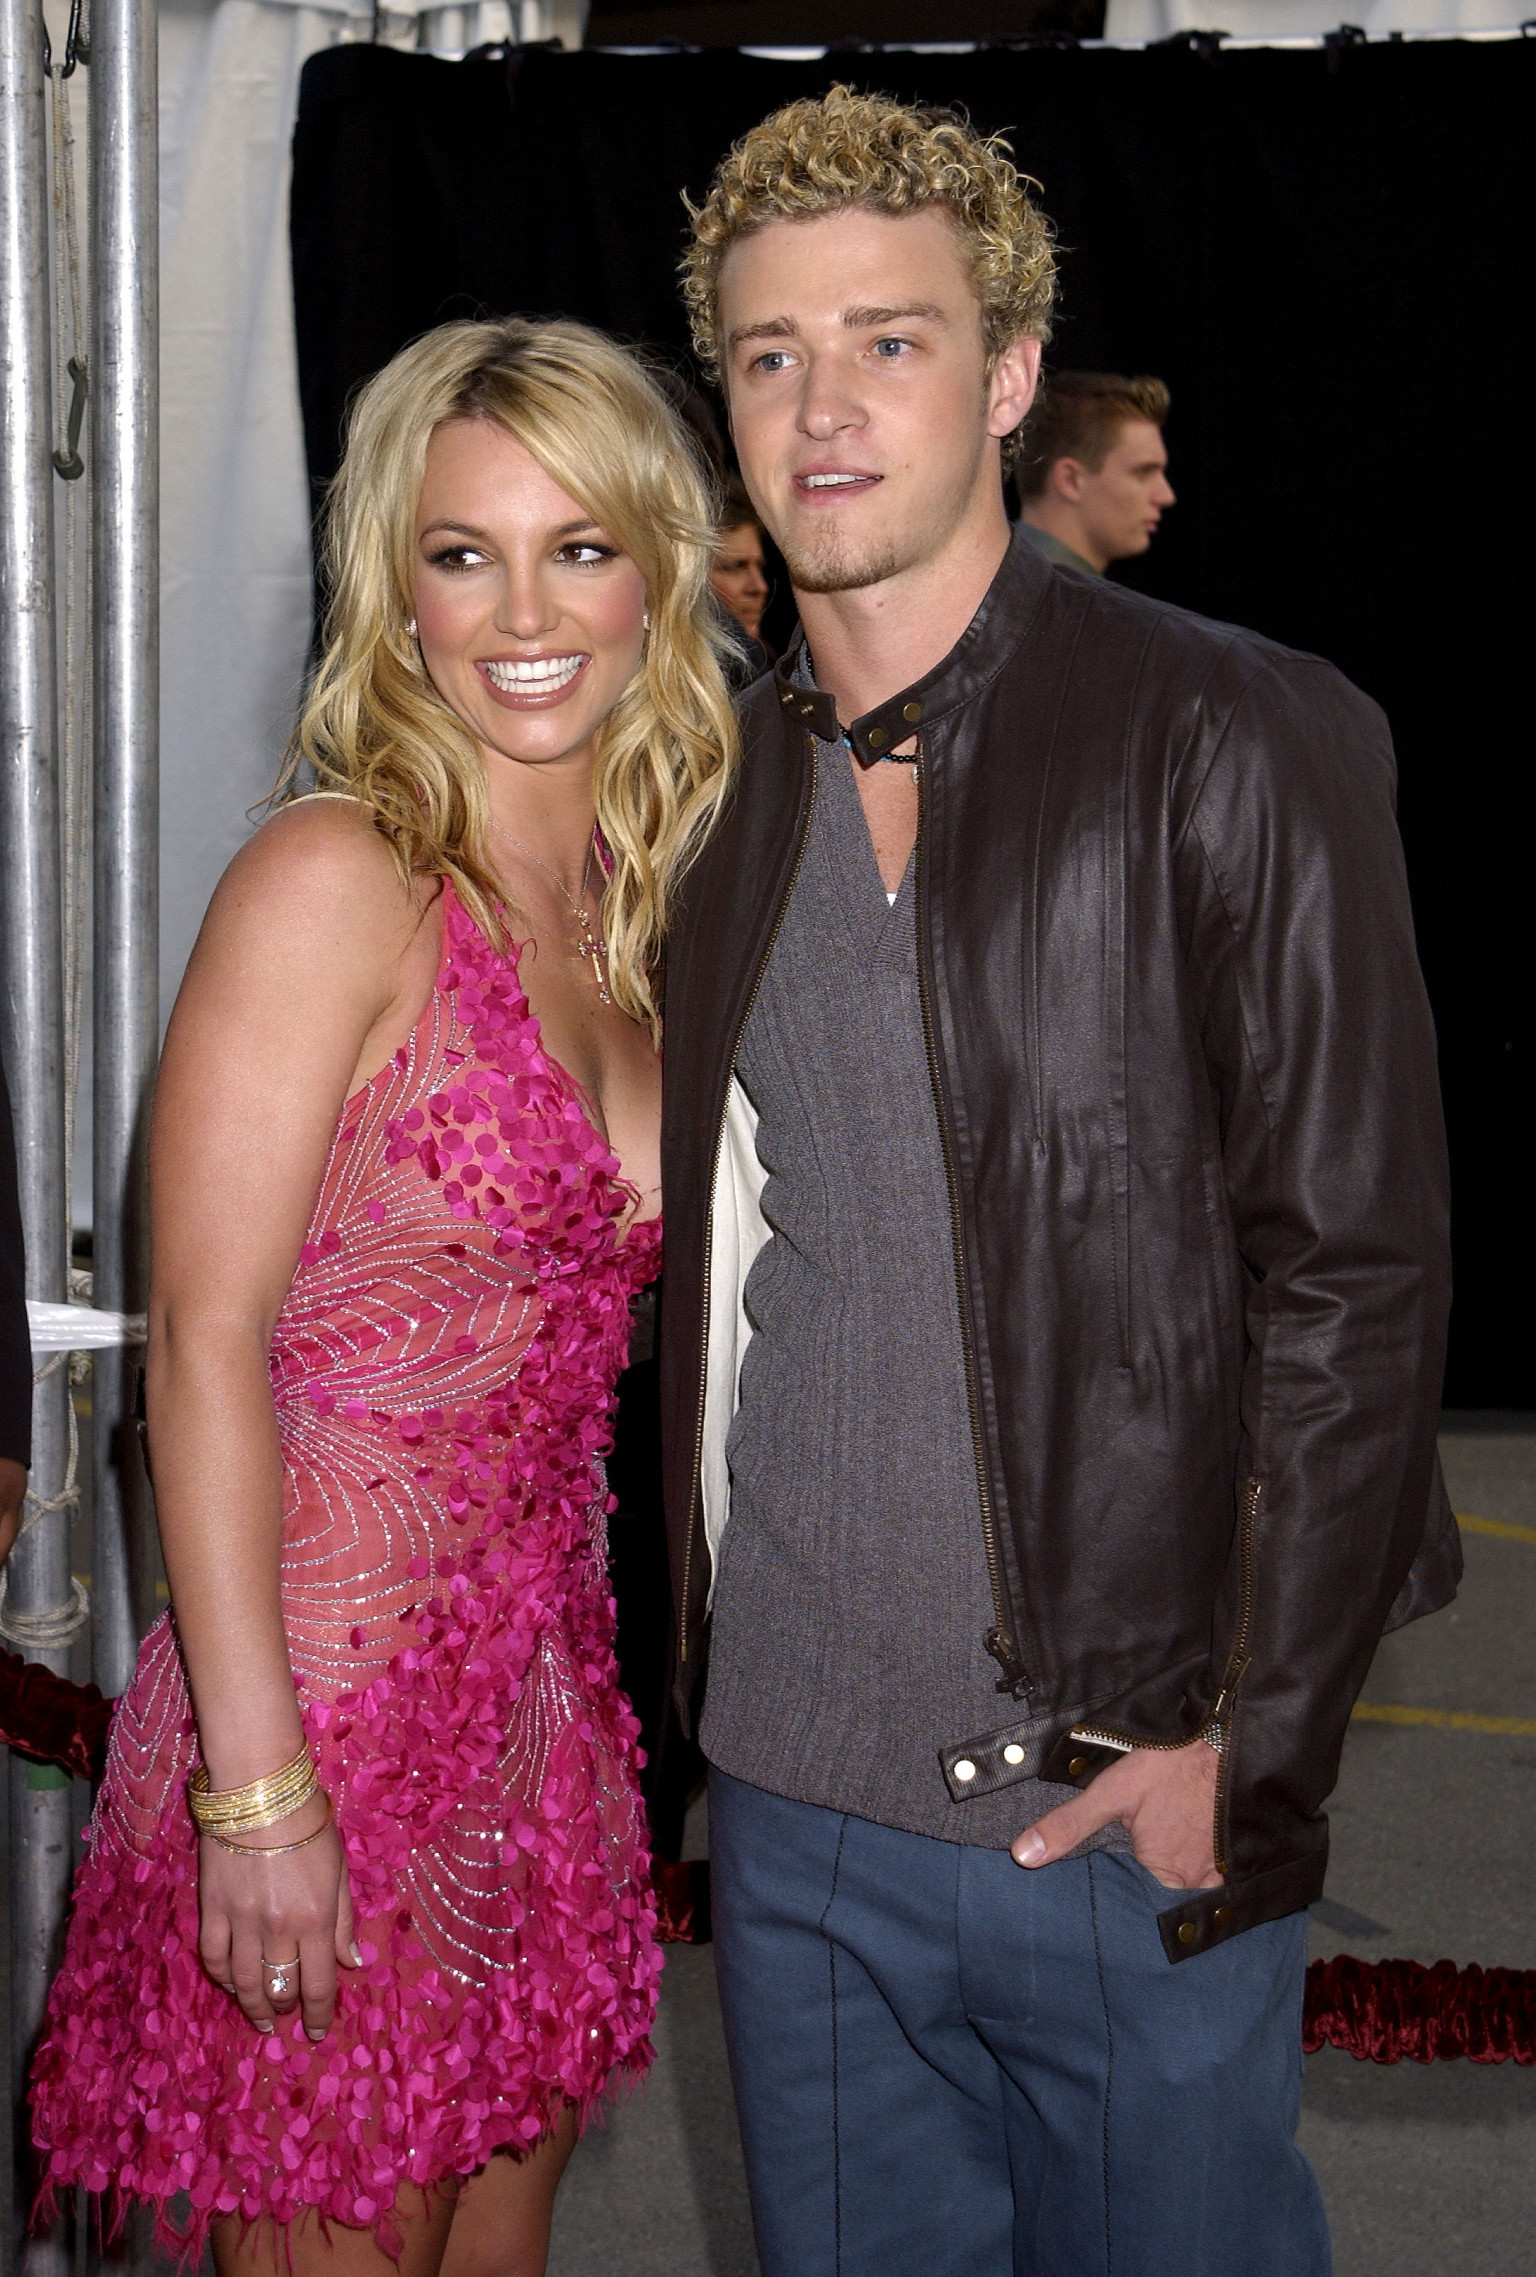 Britney Spears Reveals Justin Timberlake Was Her First Kiss